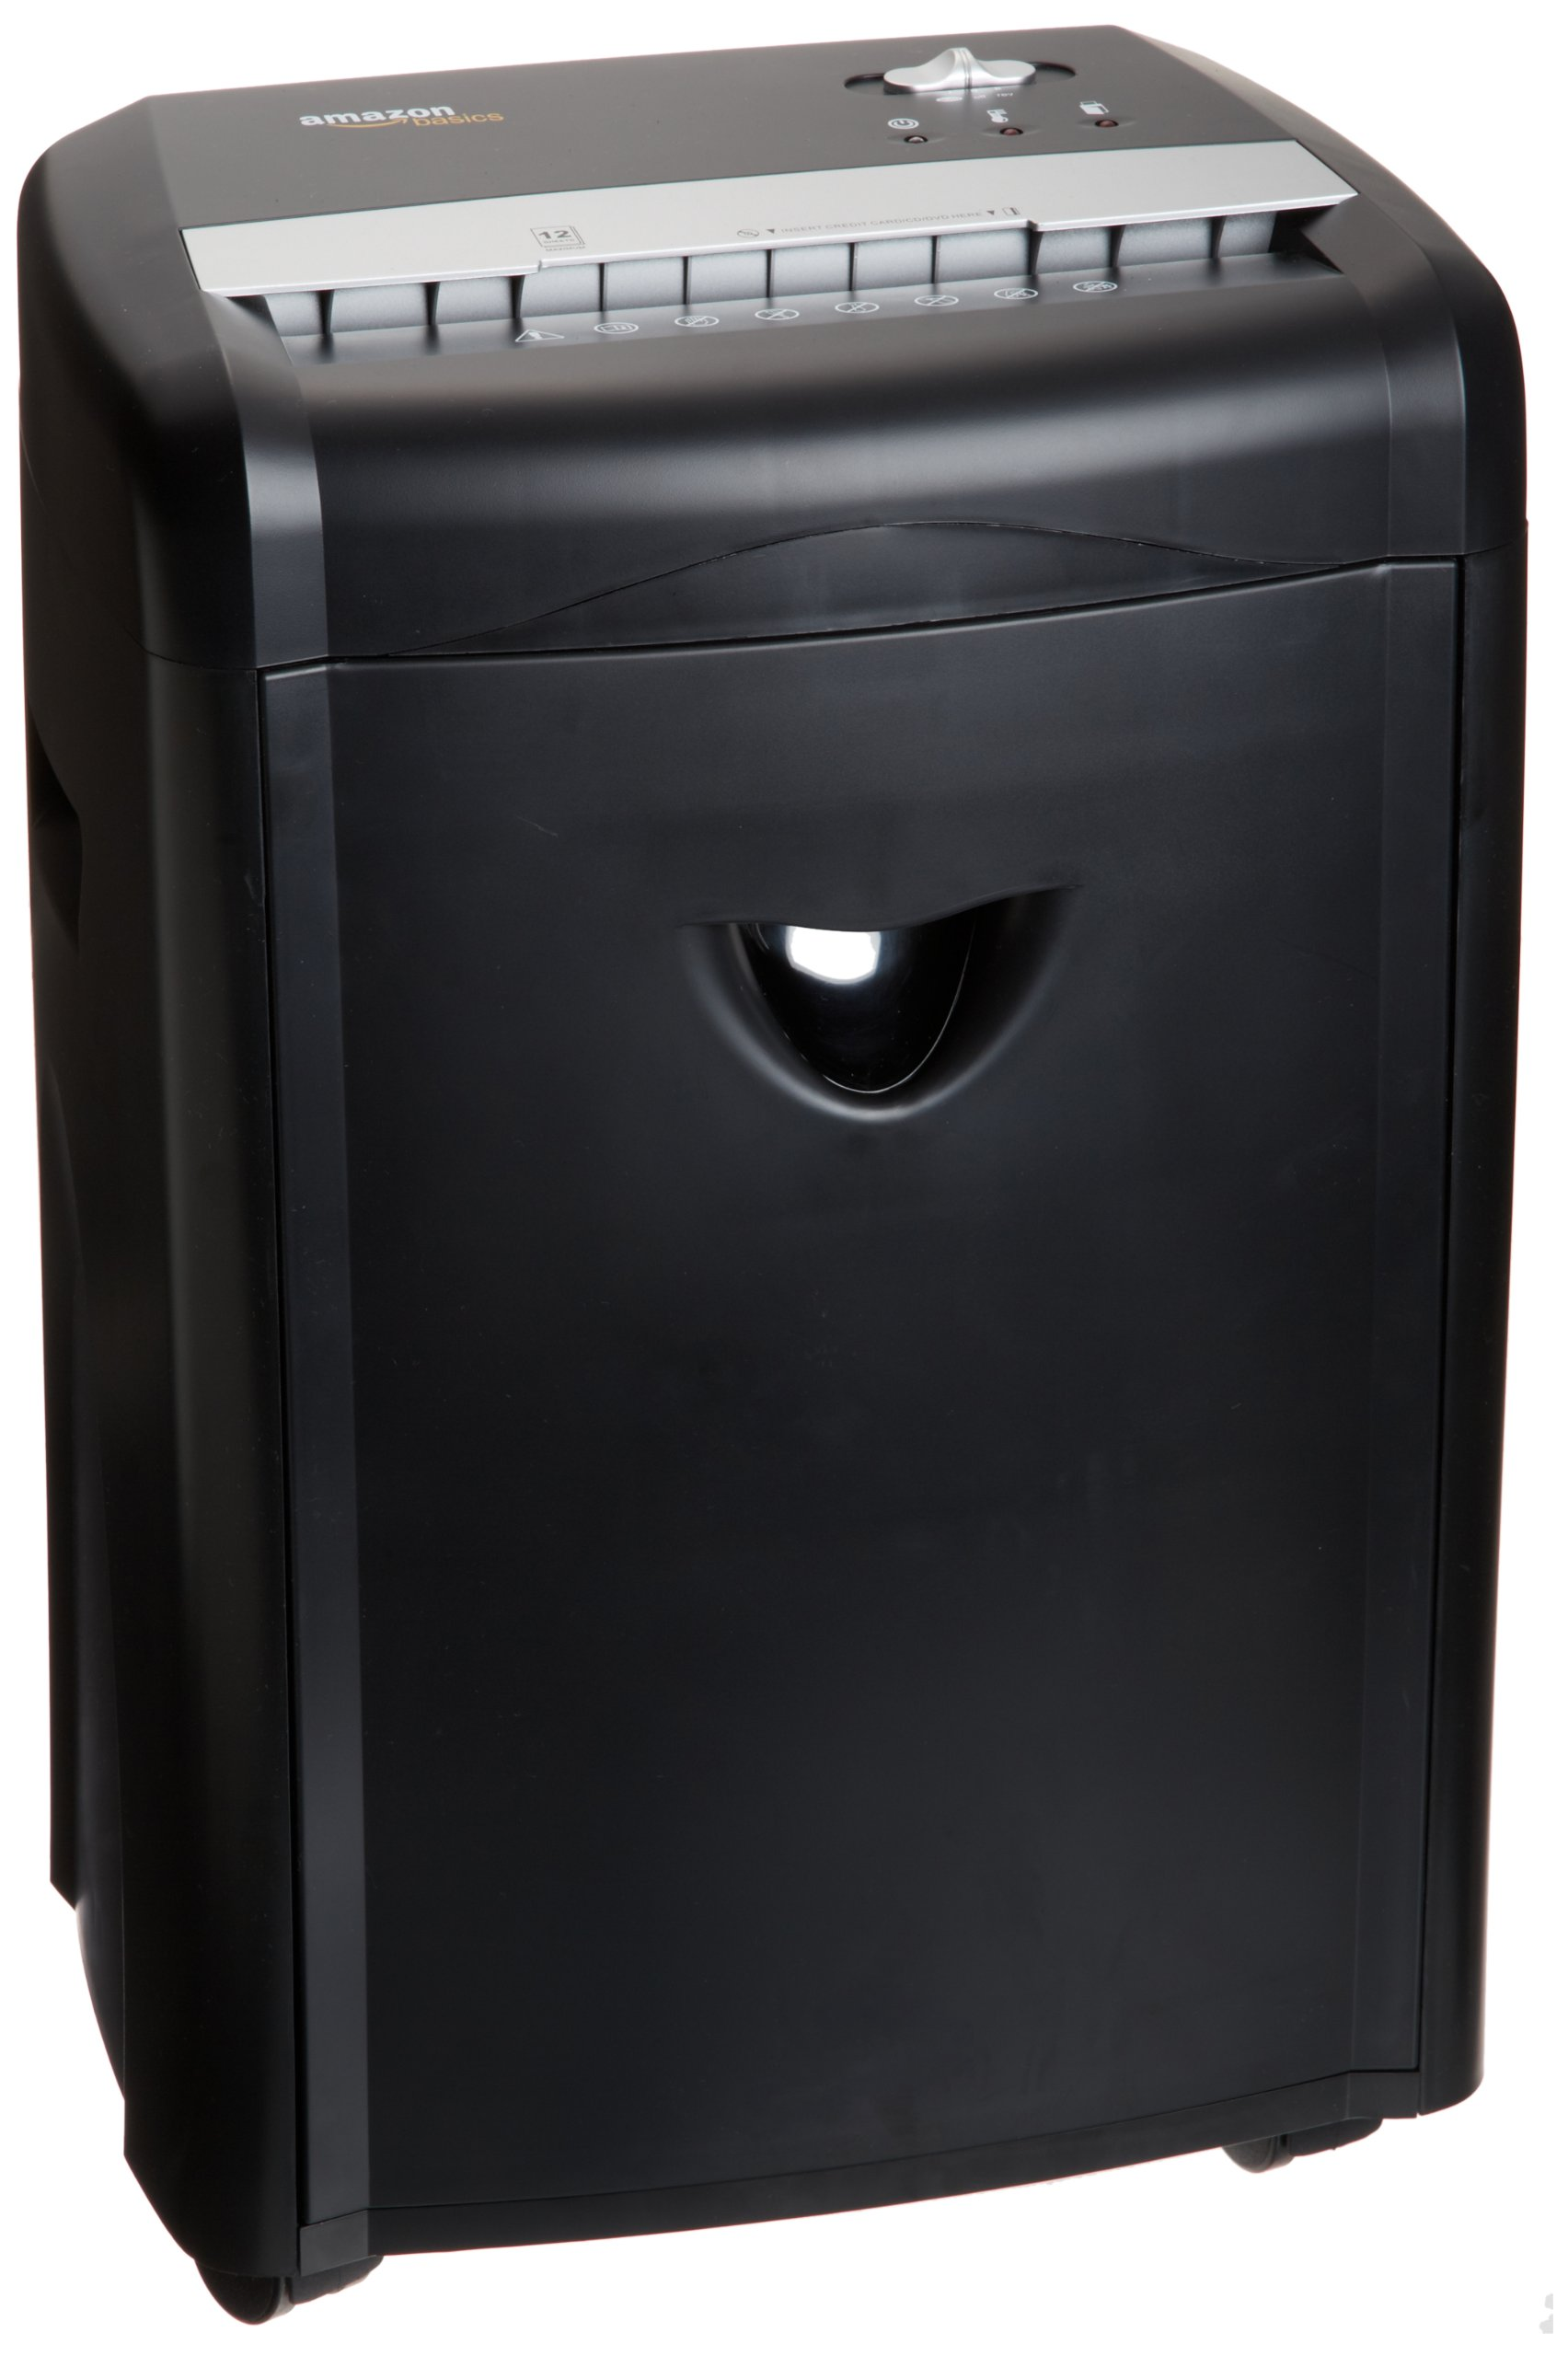 AmazonBasics 12-Sheet High-Security Micro-Cut Paper, CD and Credit Card Home Office Shredder with Pullout Basket by AmazonBasics